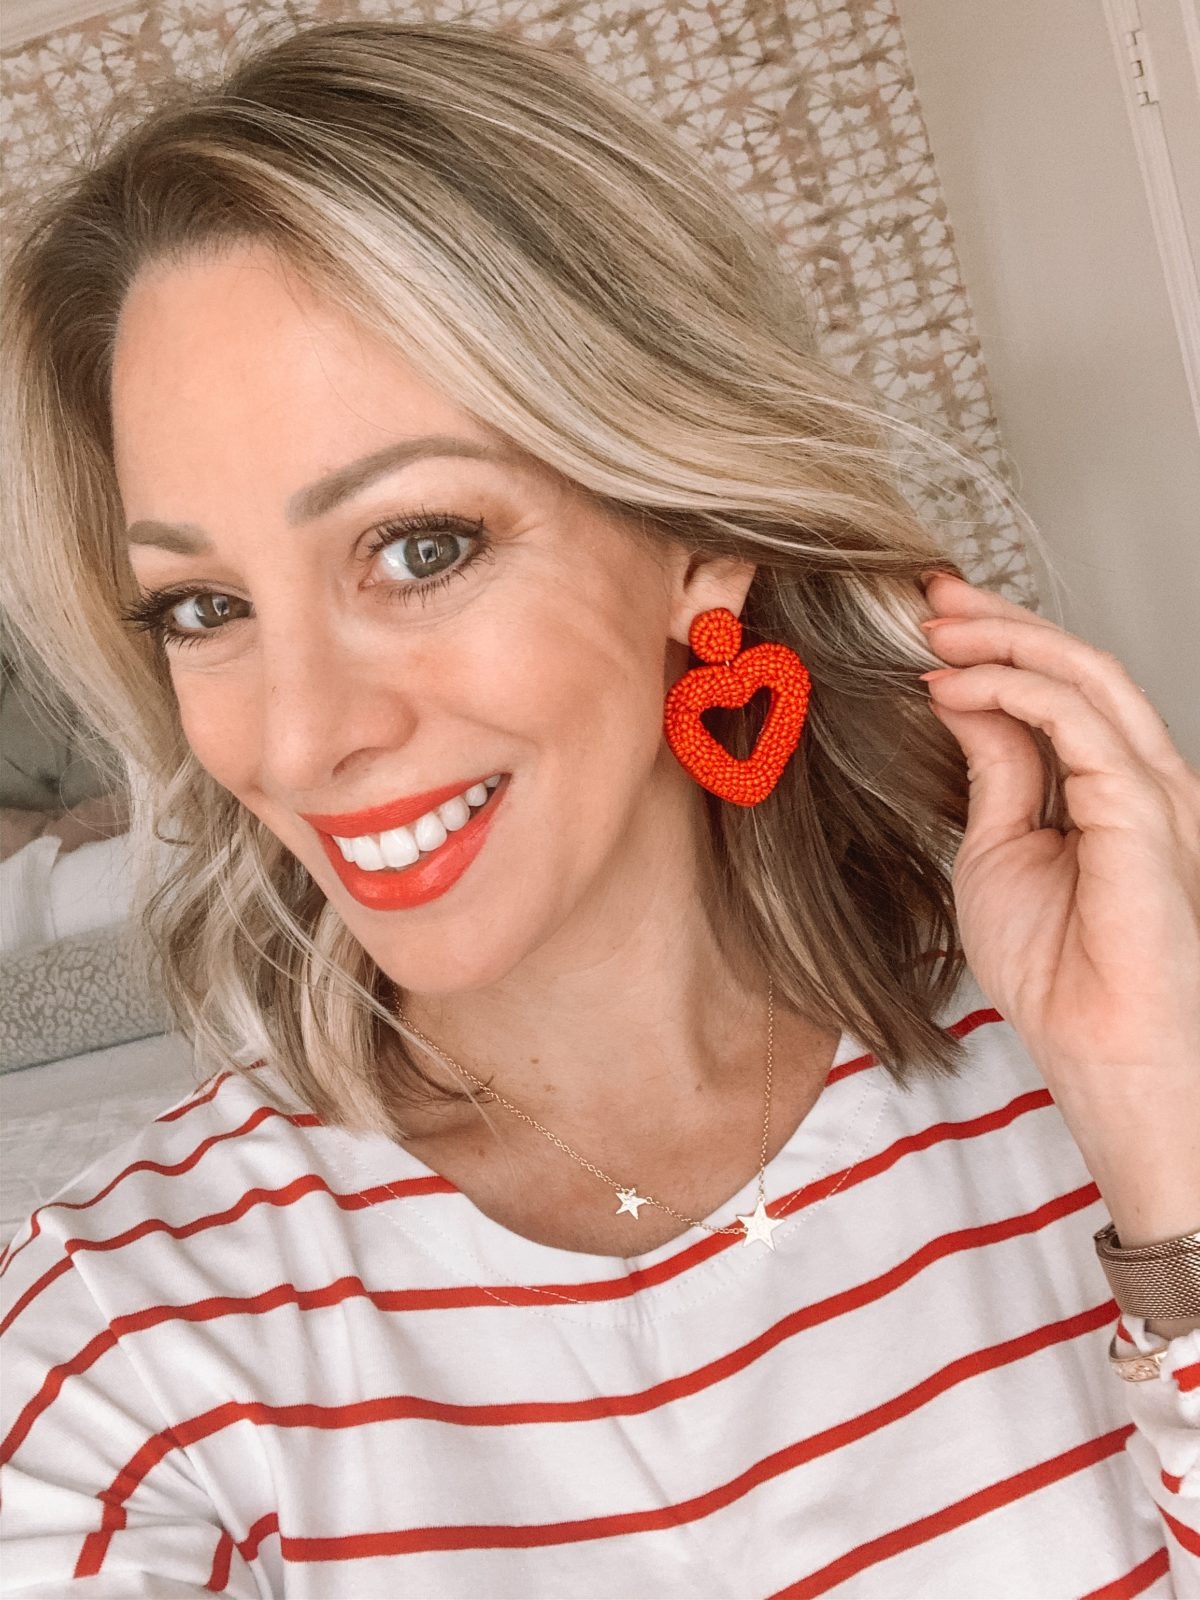 Red and White Stripe Top, Star Necklace, Heart Earrings